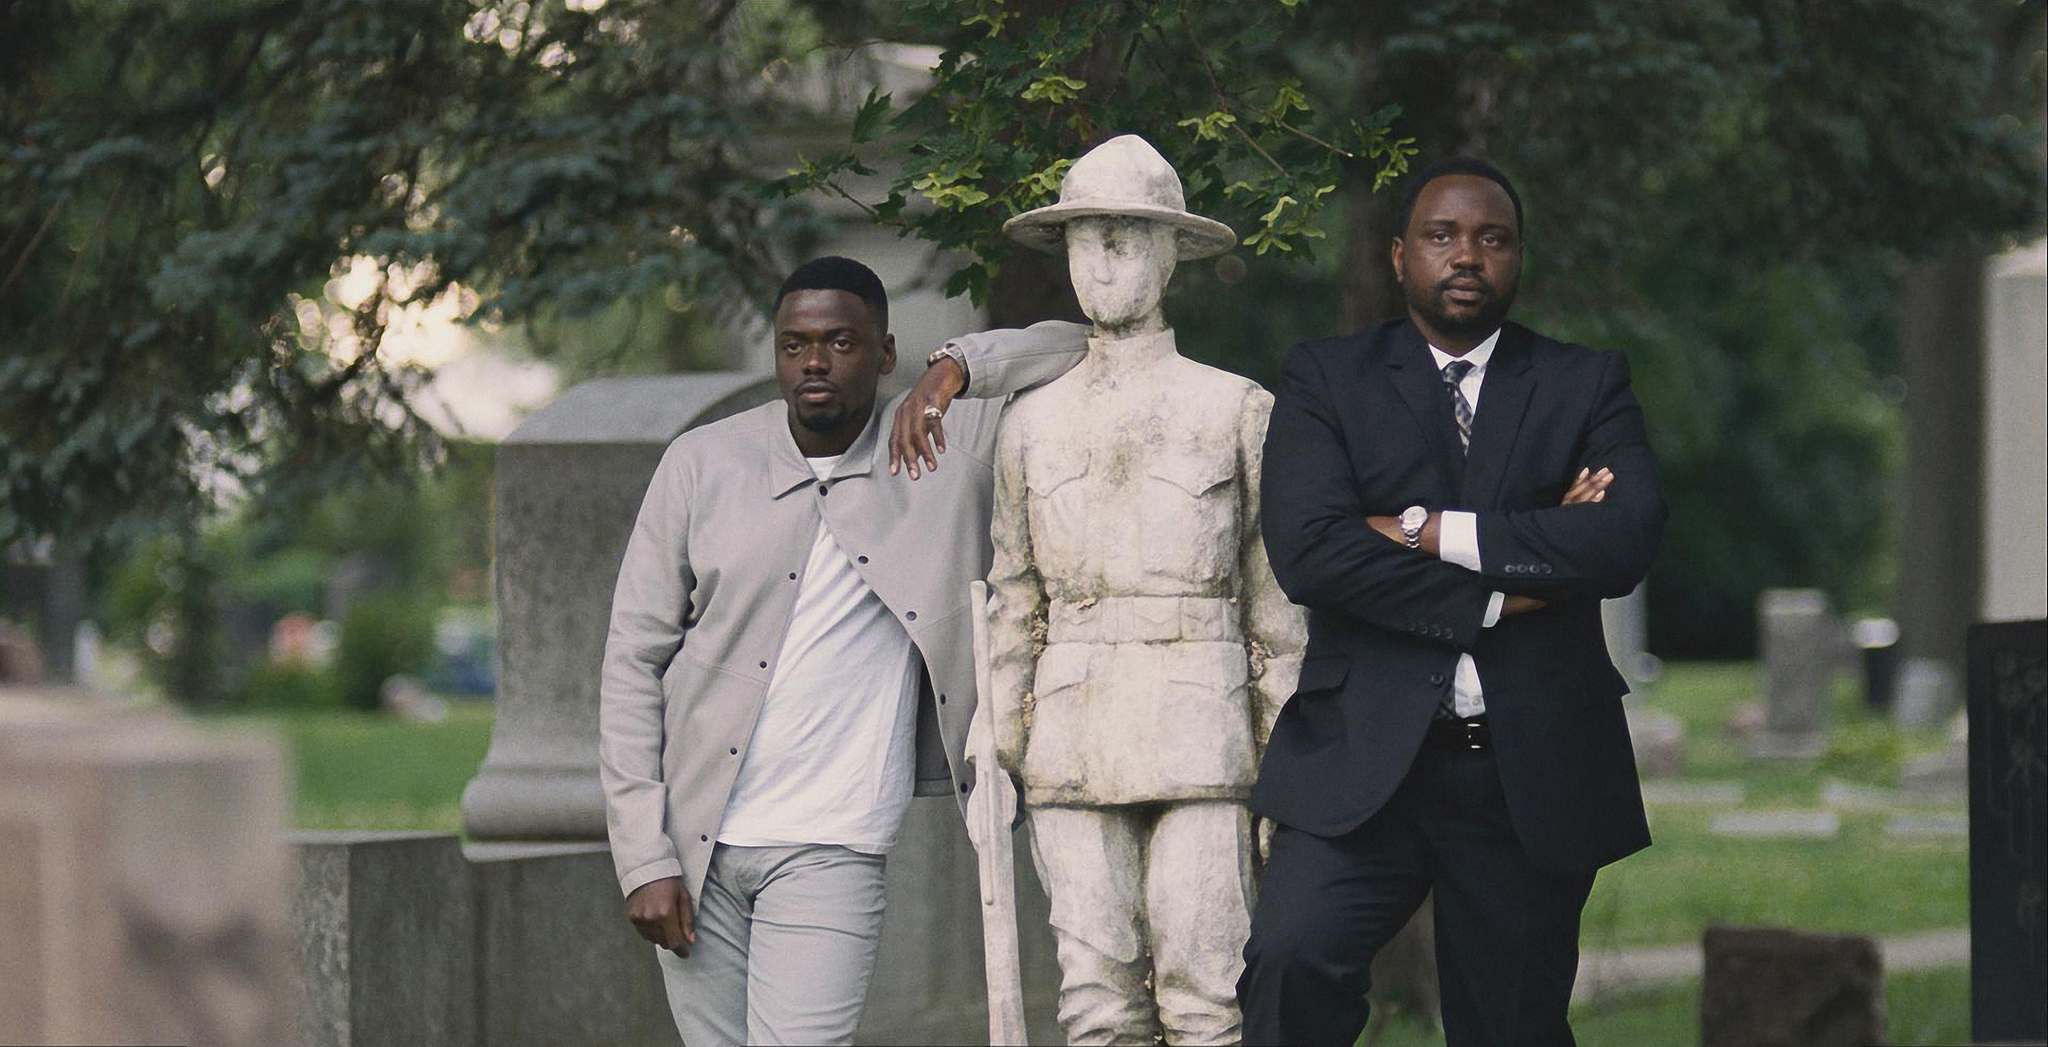 Daniel Kaluuya (left) and Brian Tyree Henry play criminal brothers in Widows who want their missing cash back. (20th Century Fox)</p>